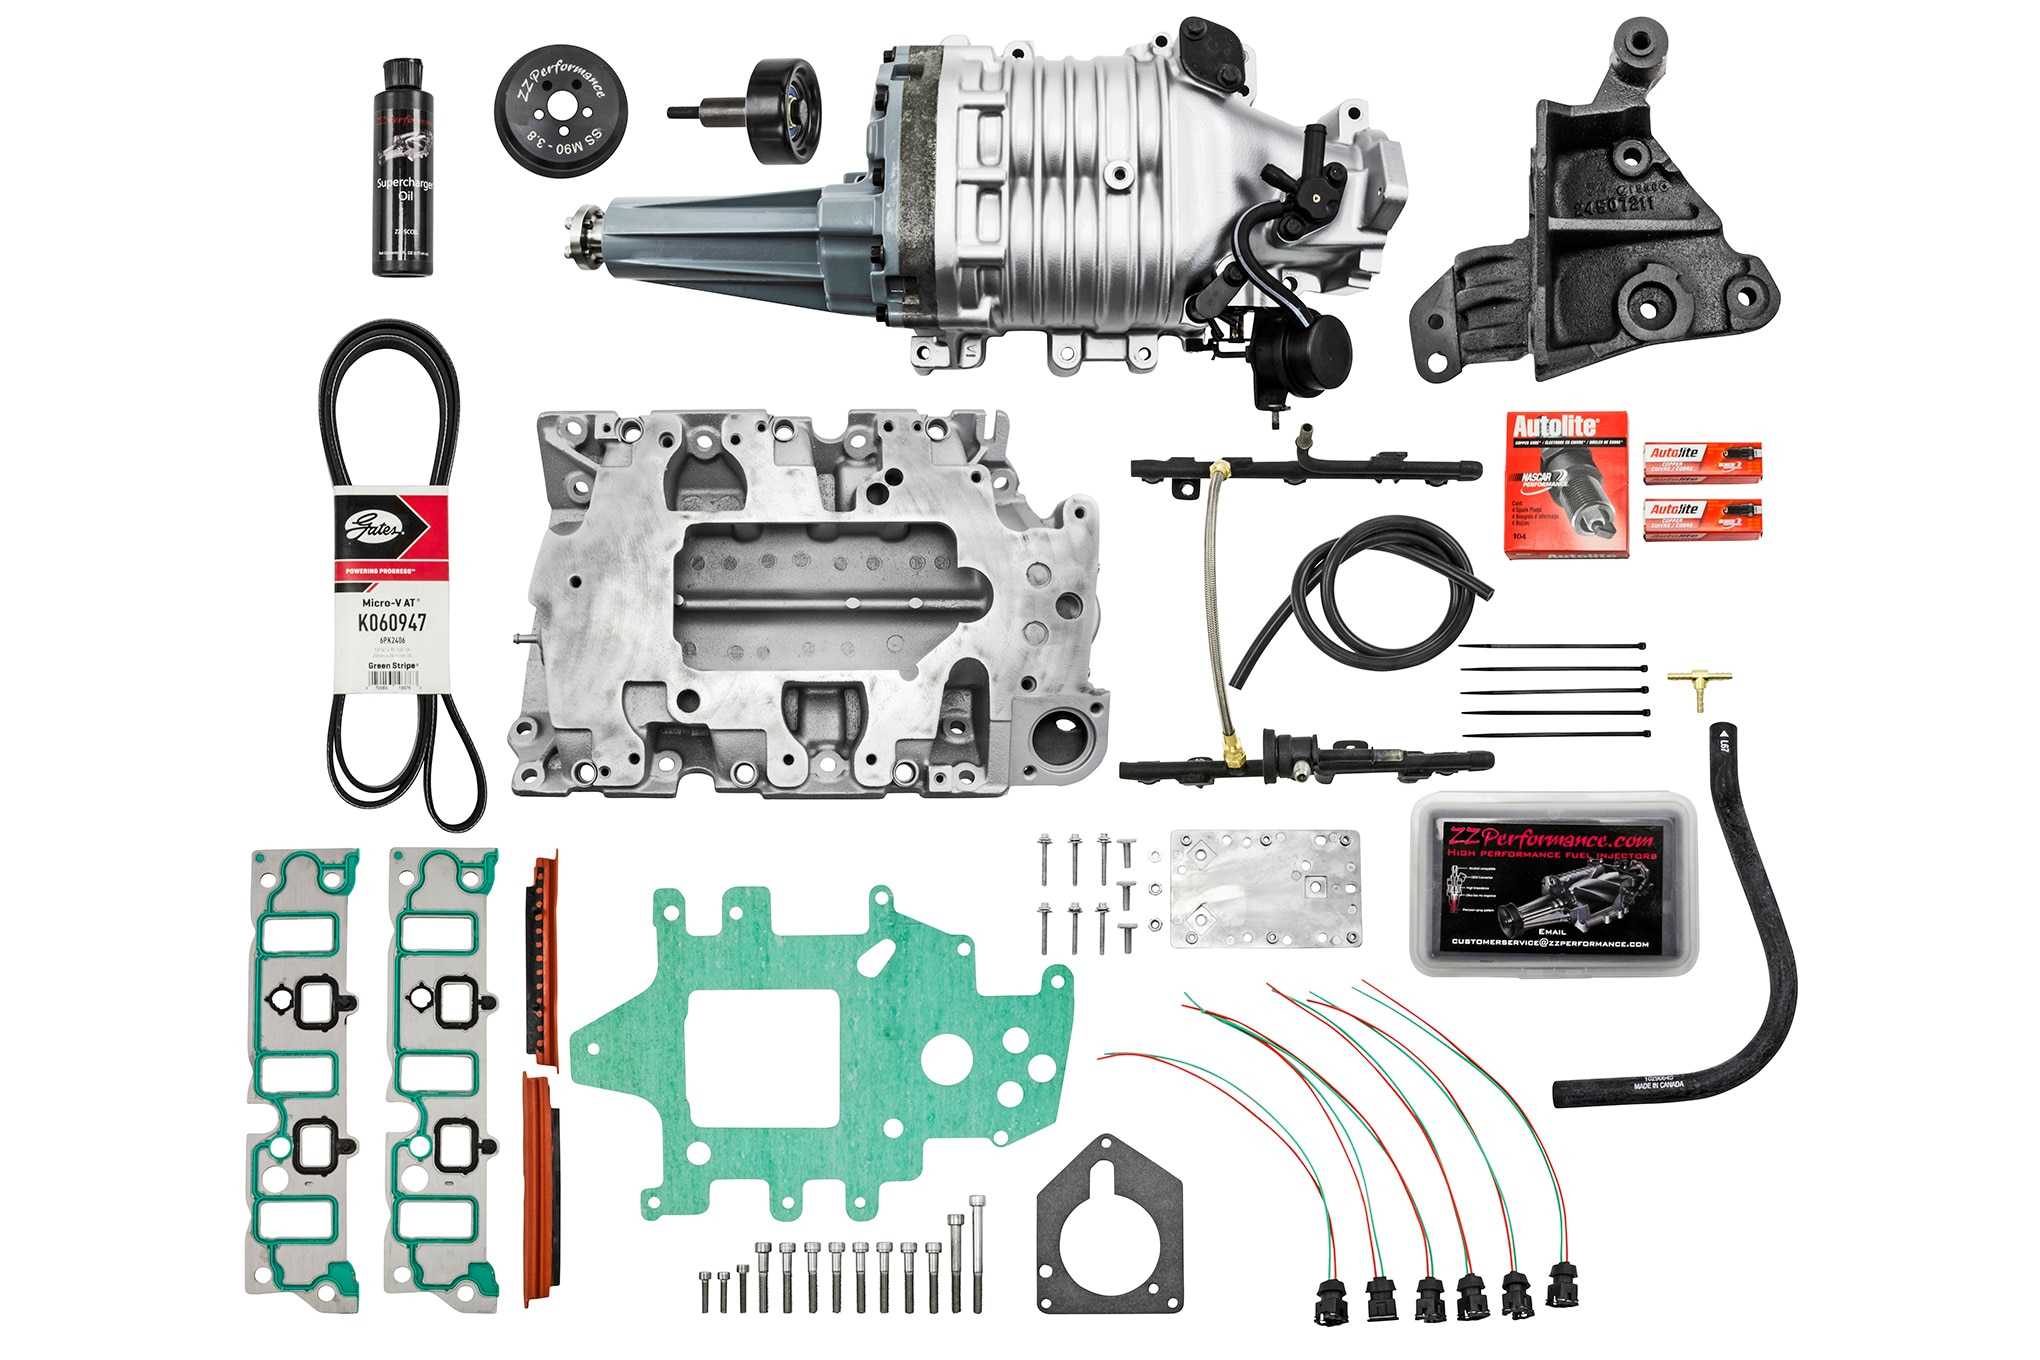 3800 series 2 engine diagram 90cc pit bike wiring stop: supercharging a normally-aspirated ii v6 - hot rod network